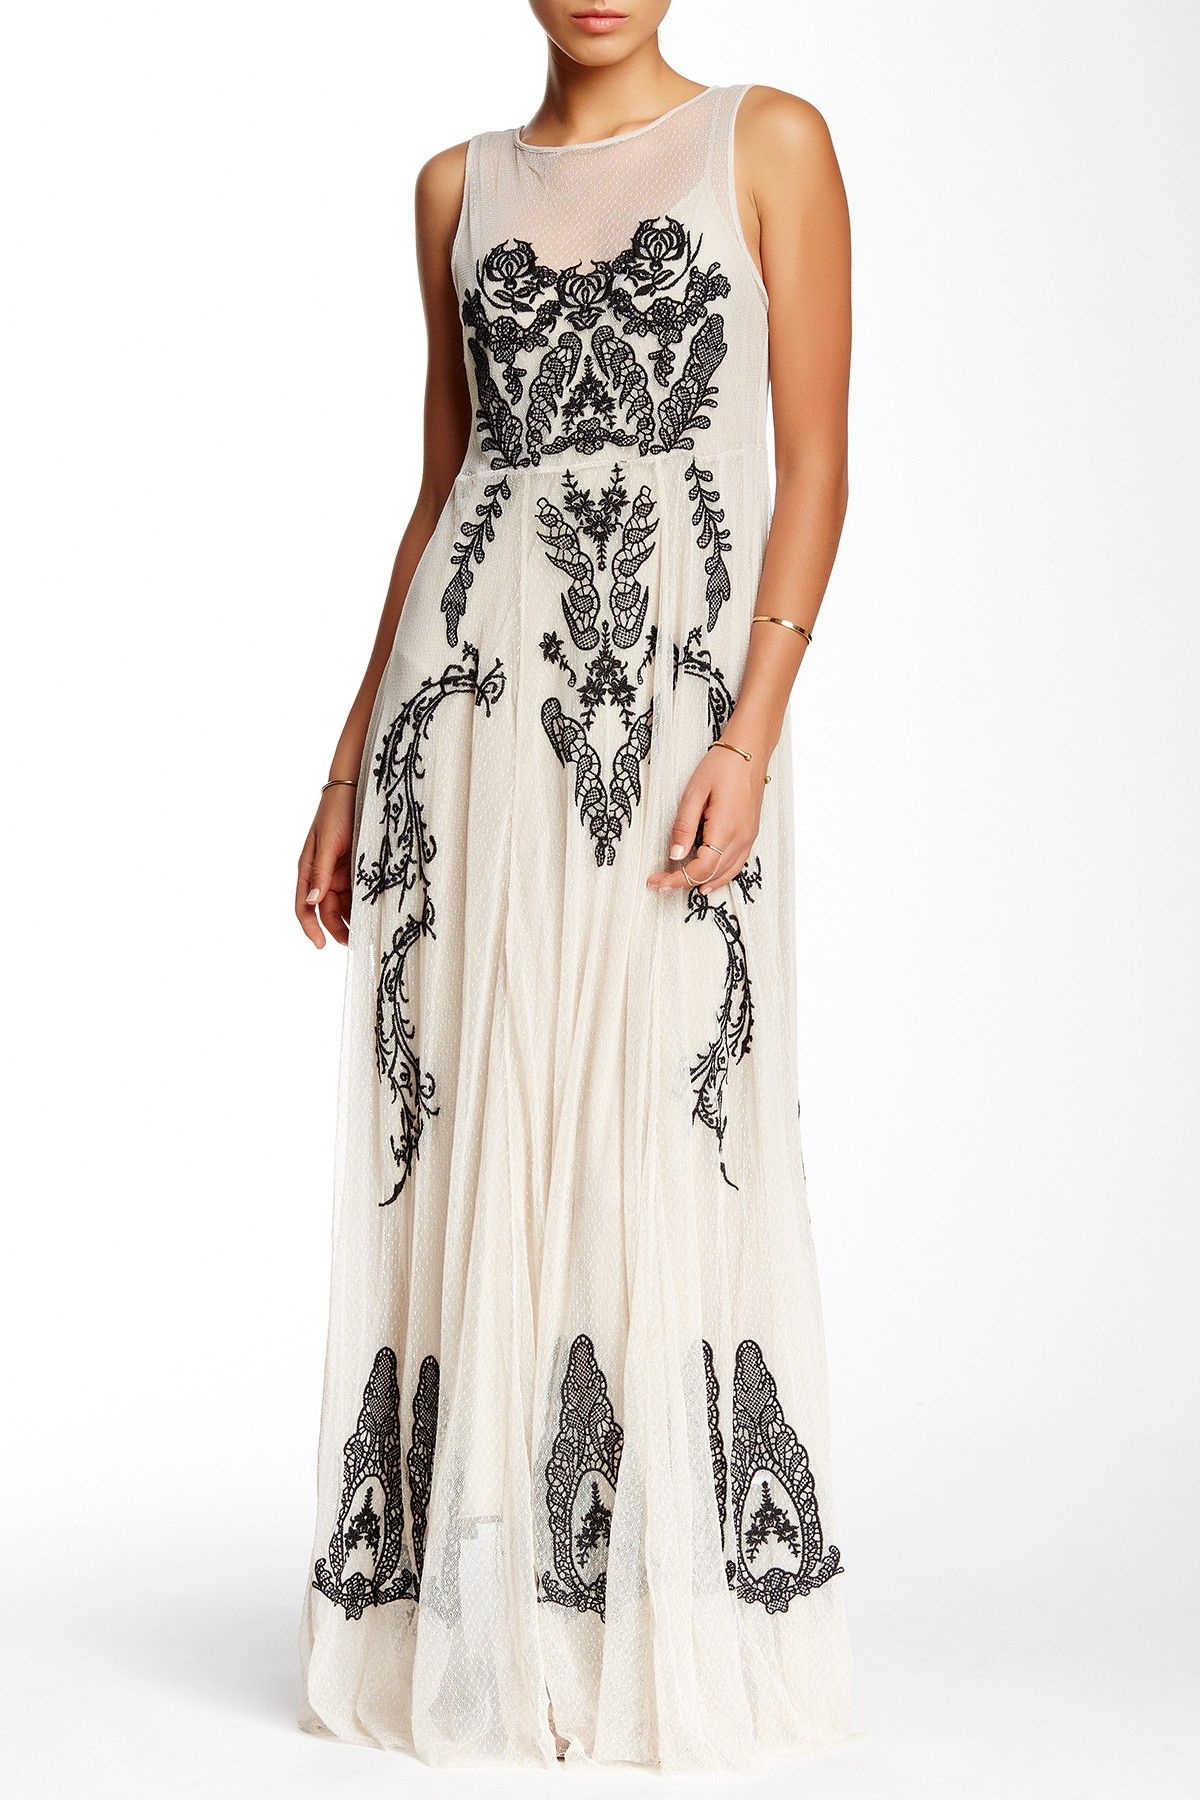 On Hautelook Biya Embroidered Lace Maxi Dress Fancy Gowns Elegant Dresses For Wedding Guest Nordstrom Wedding Dresses [ 1800 x 1200 Pixel ]